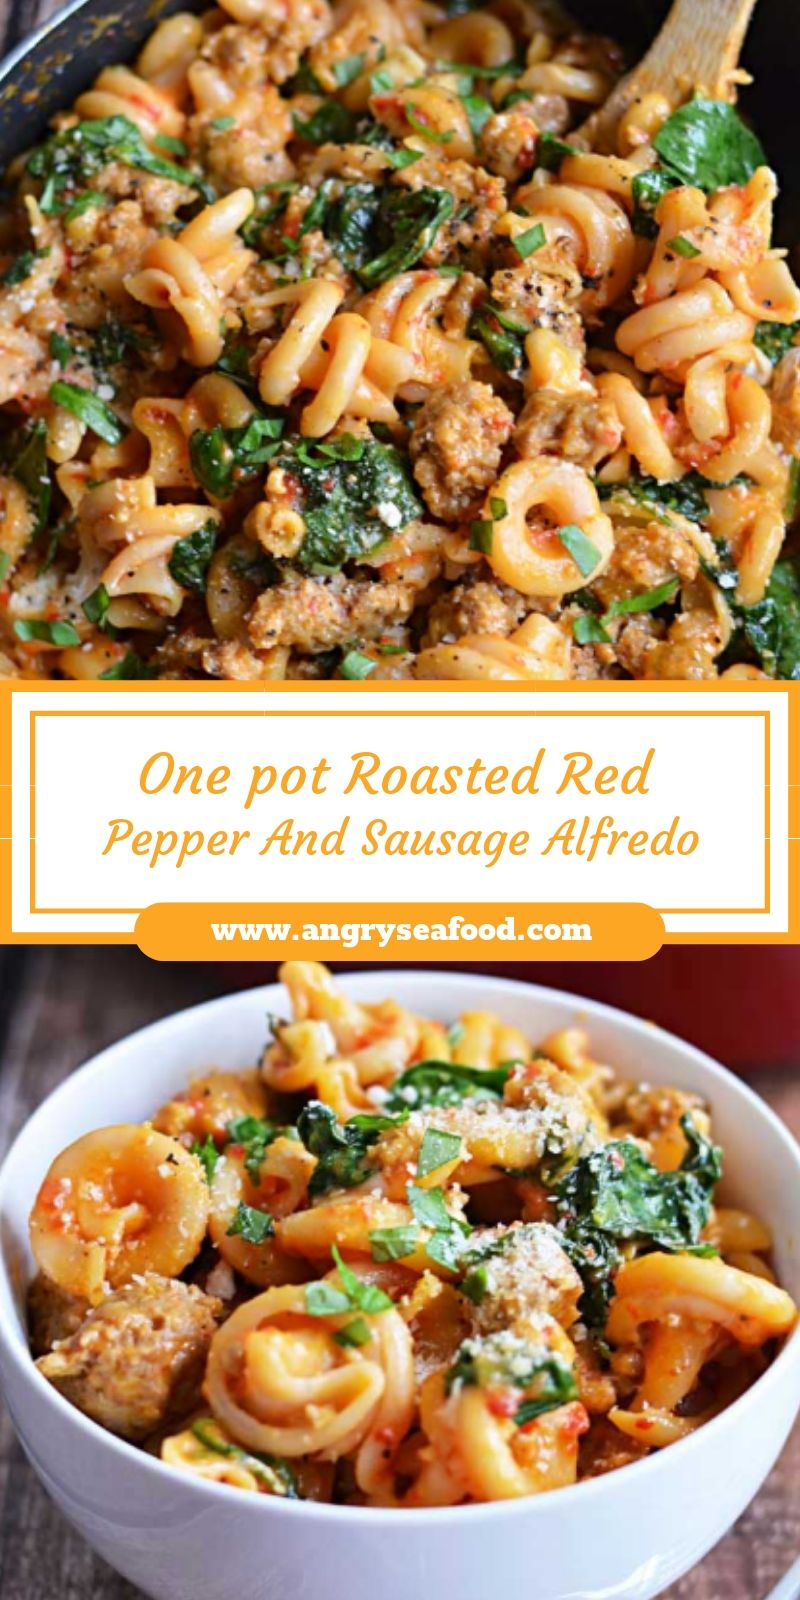 One pot Roasted Red Pepper And Sausage Alfredo